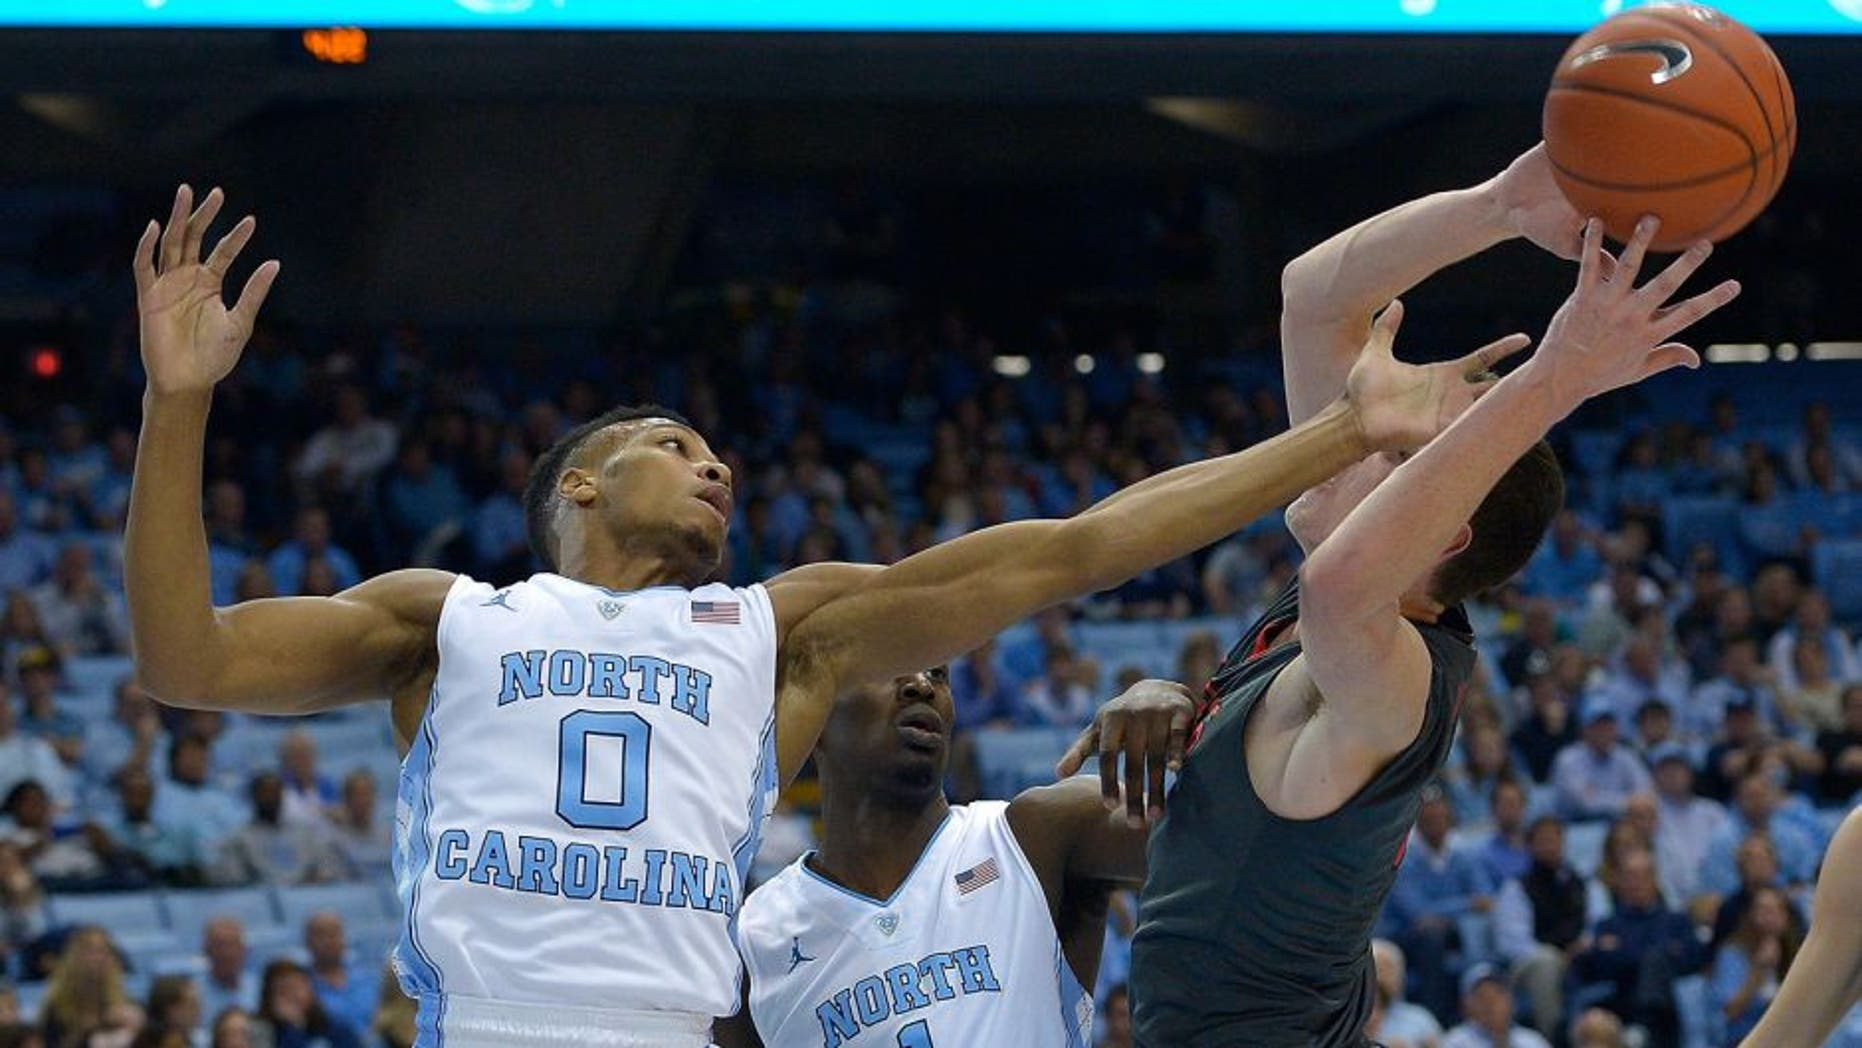 CHAPEL HILL, NC - NOVEMBER 15: Nate Britt #0 and Theo Pinson #1 of the North Carolina Tar Heels battle Matija Milin #34 of the Fairfield Stags during the first half of their game at the Dean Smith Center on November 15, 2015 in Chapel Hill, North Carolina. (Photo by Grant Halverson/Getty Images)